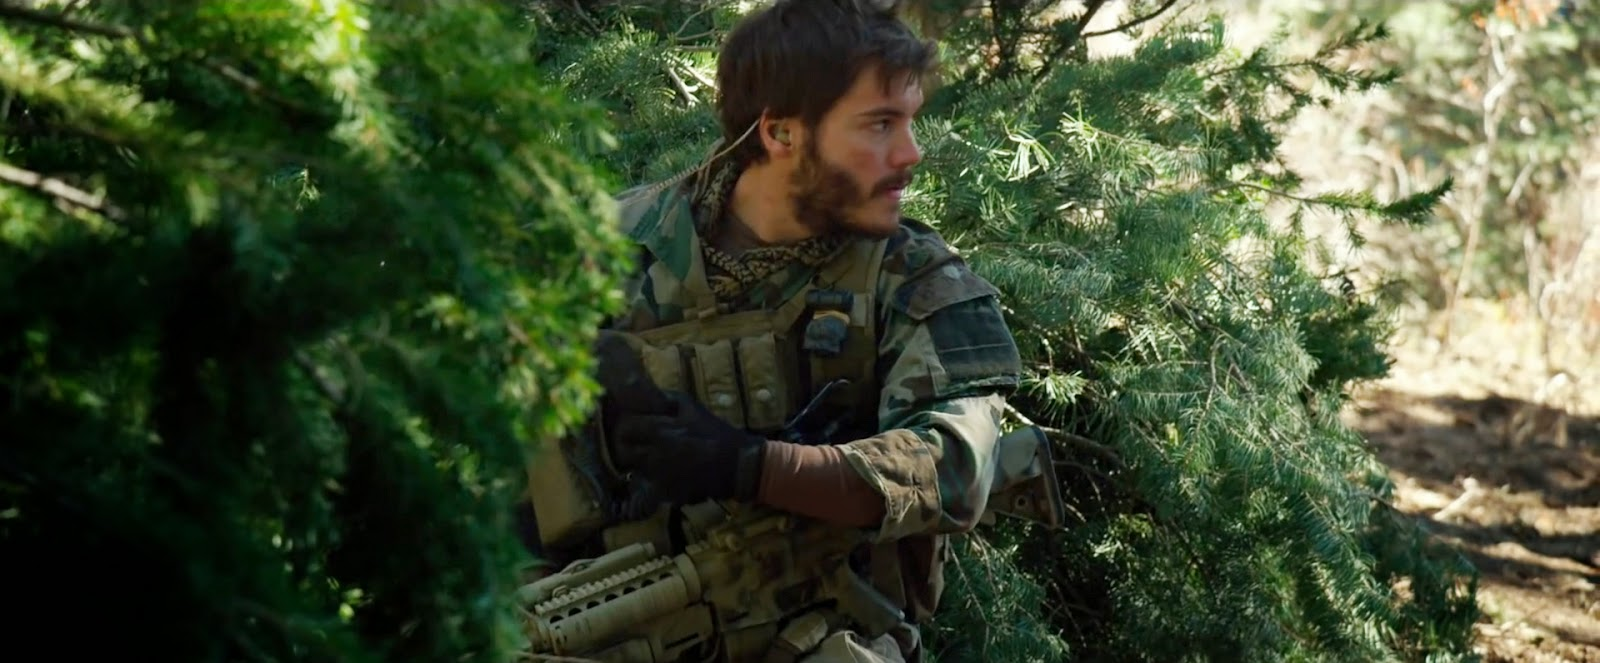 lone survivor danny dietzs backpack tactical vest and